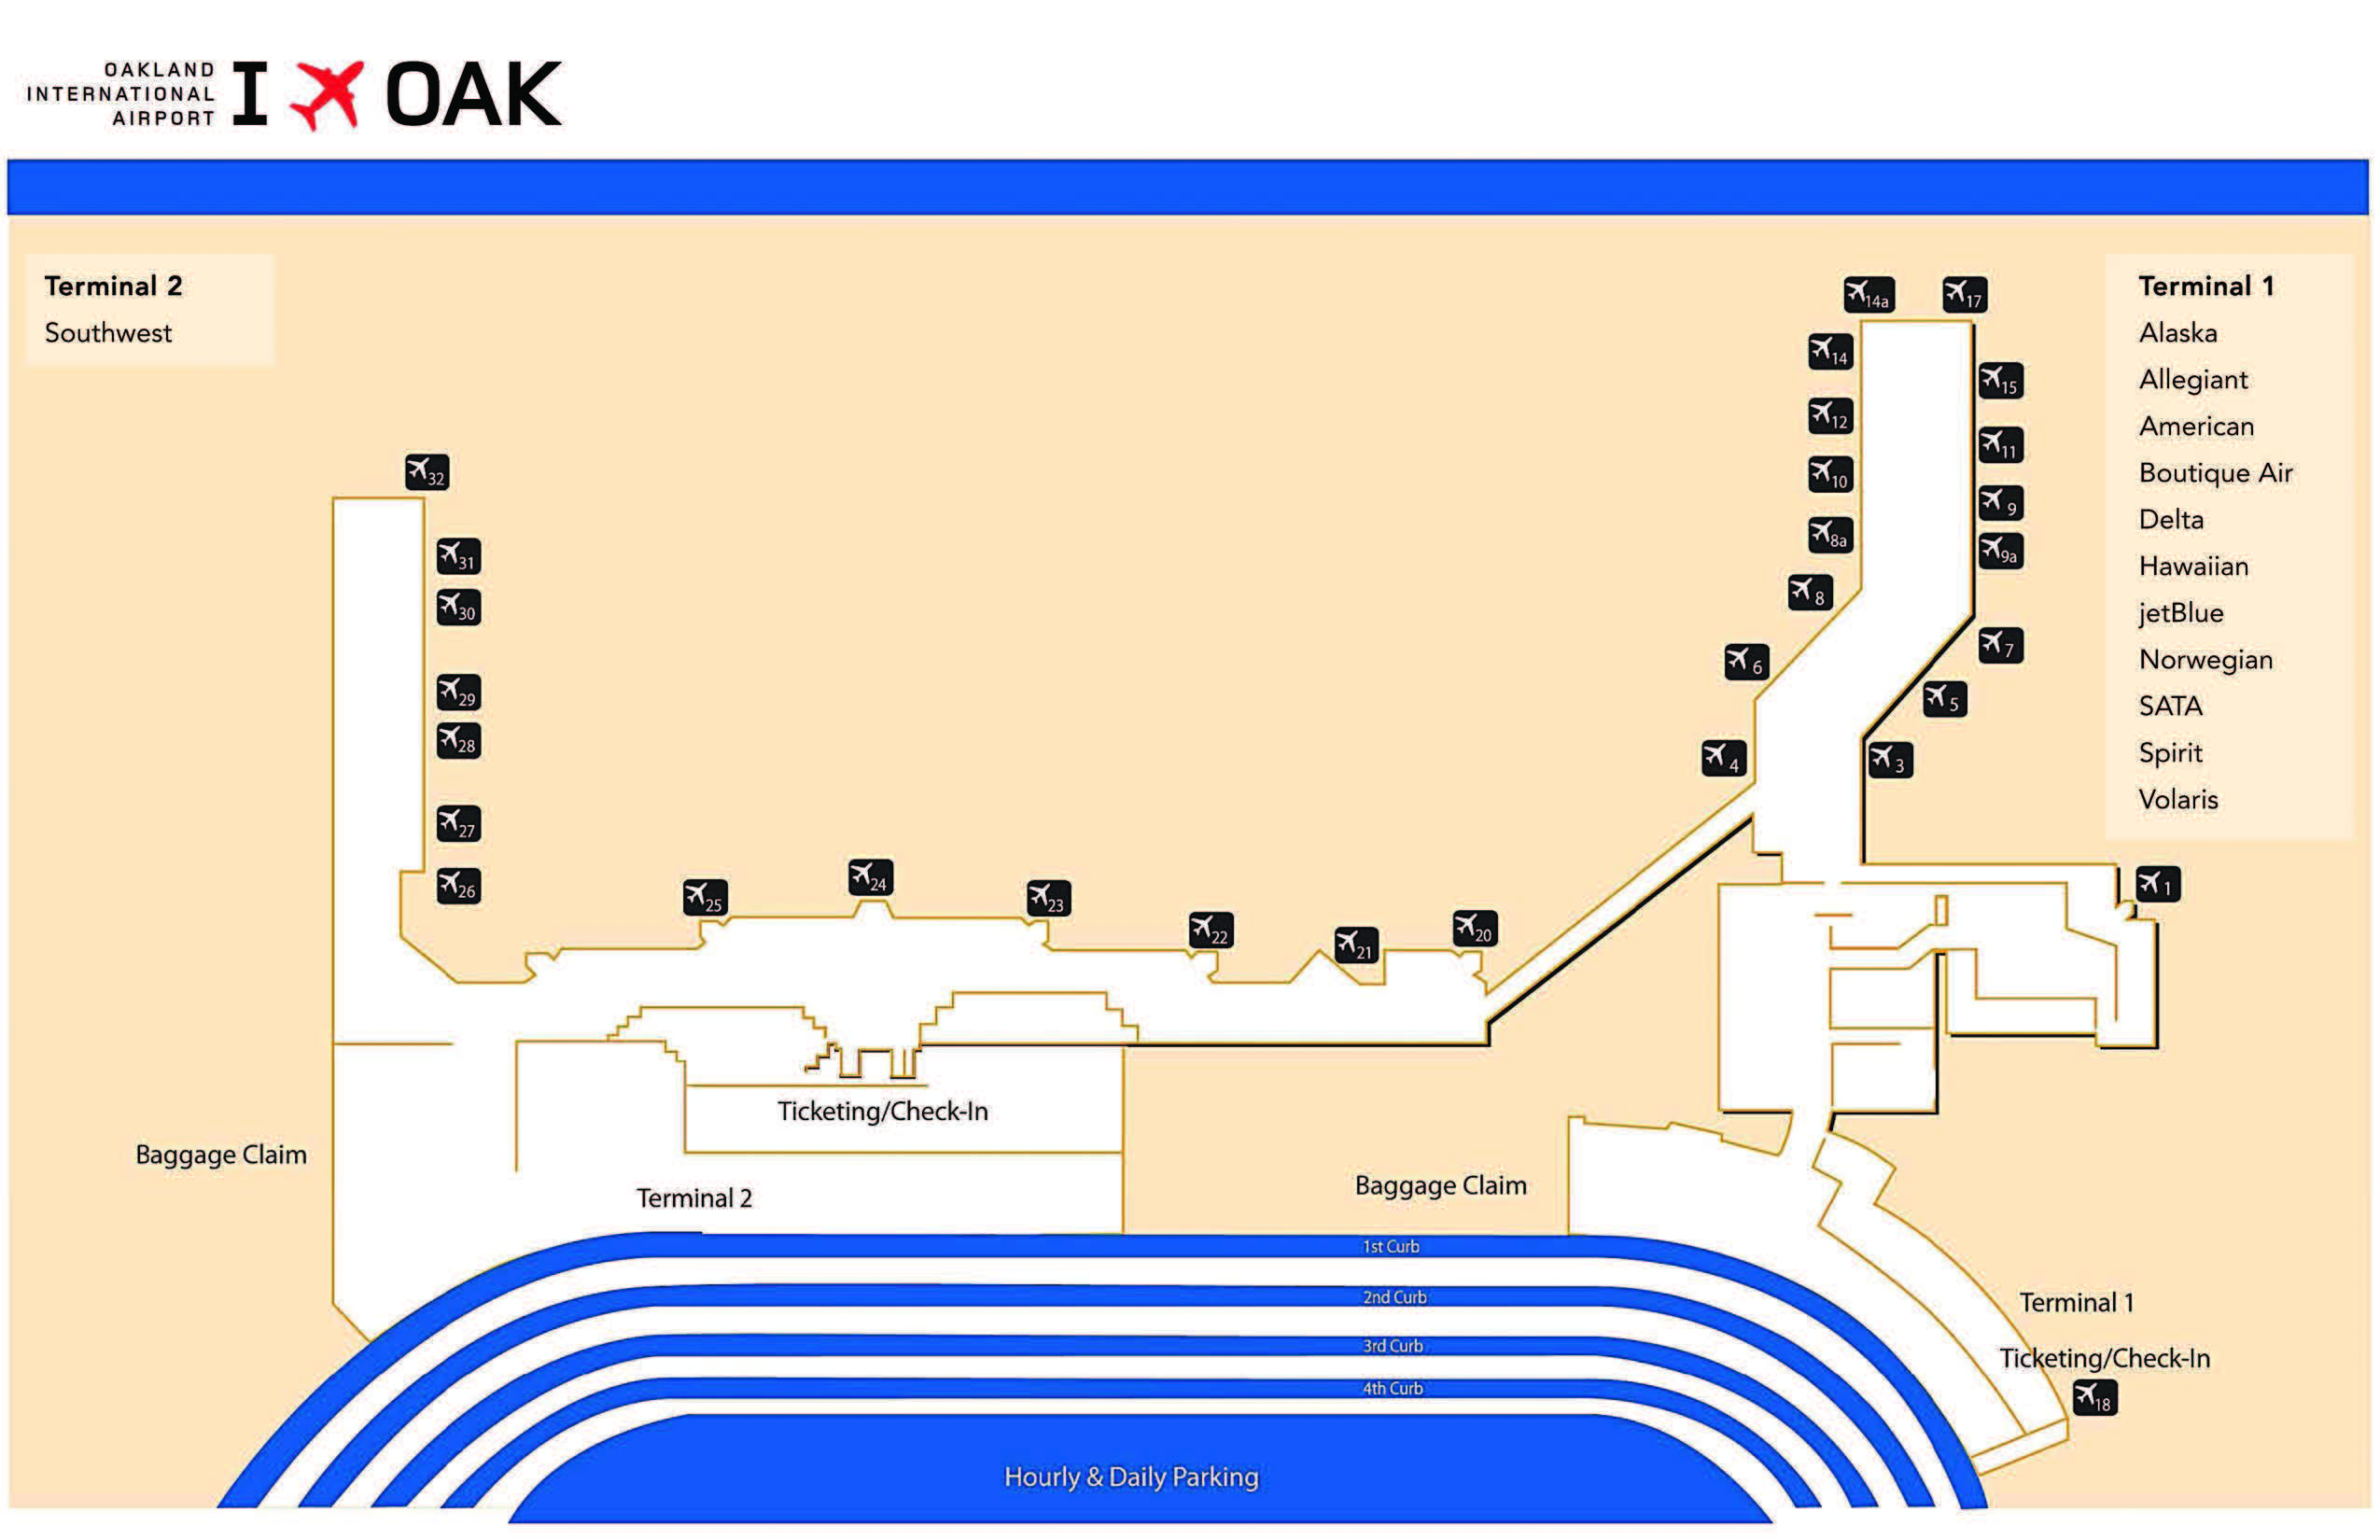 Airport Terminal Map - Oakland International Airport